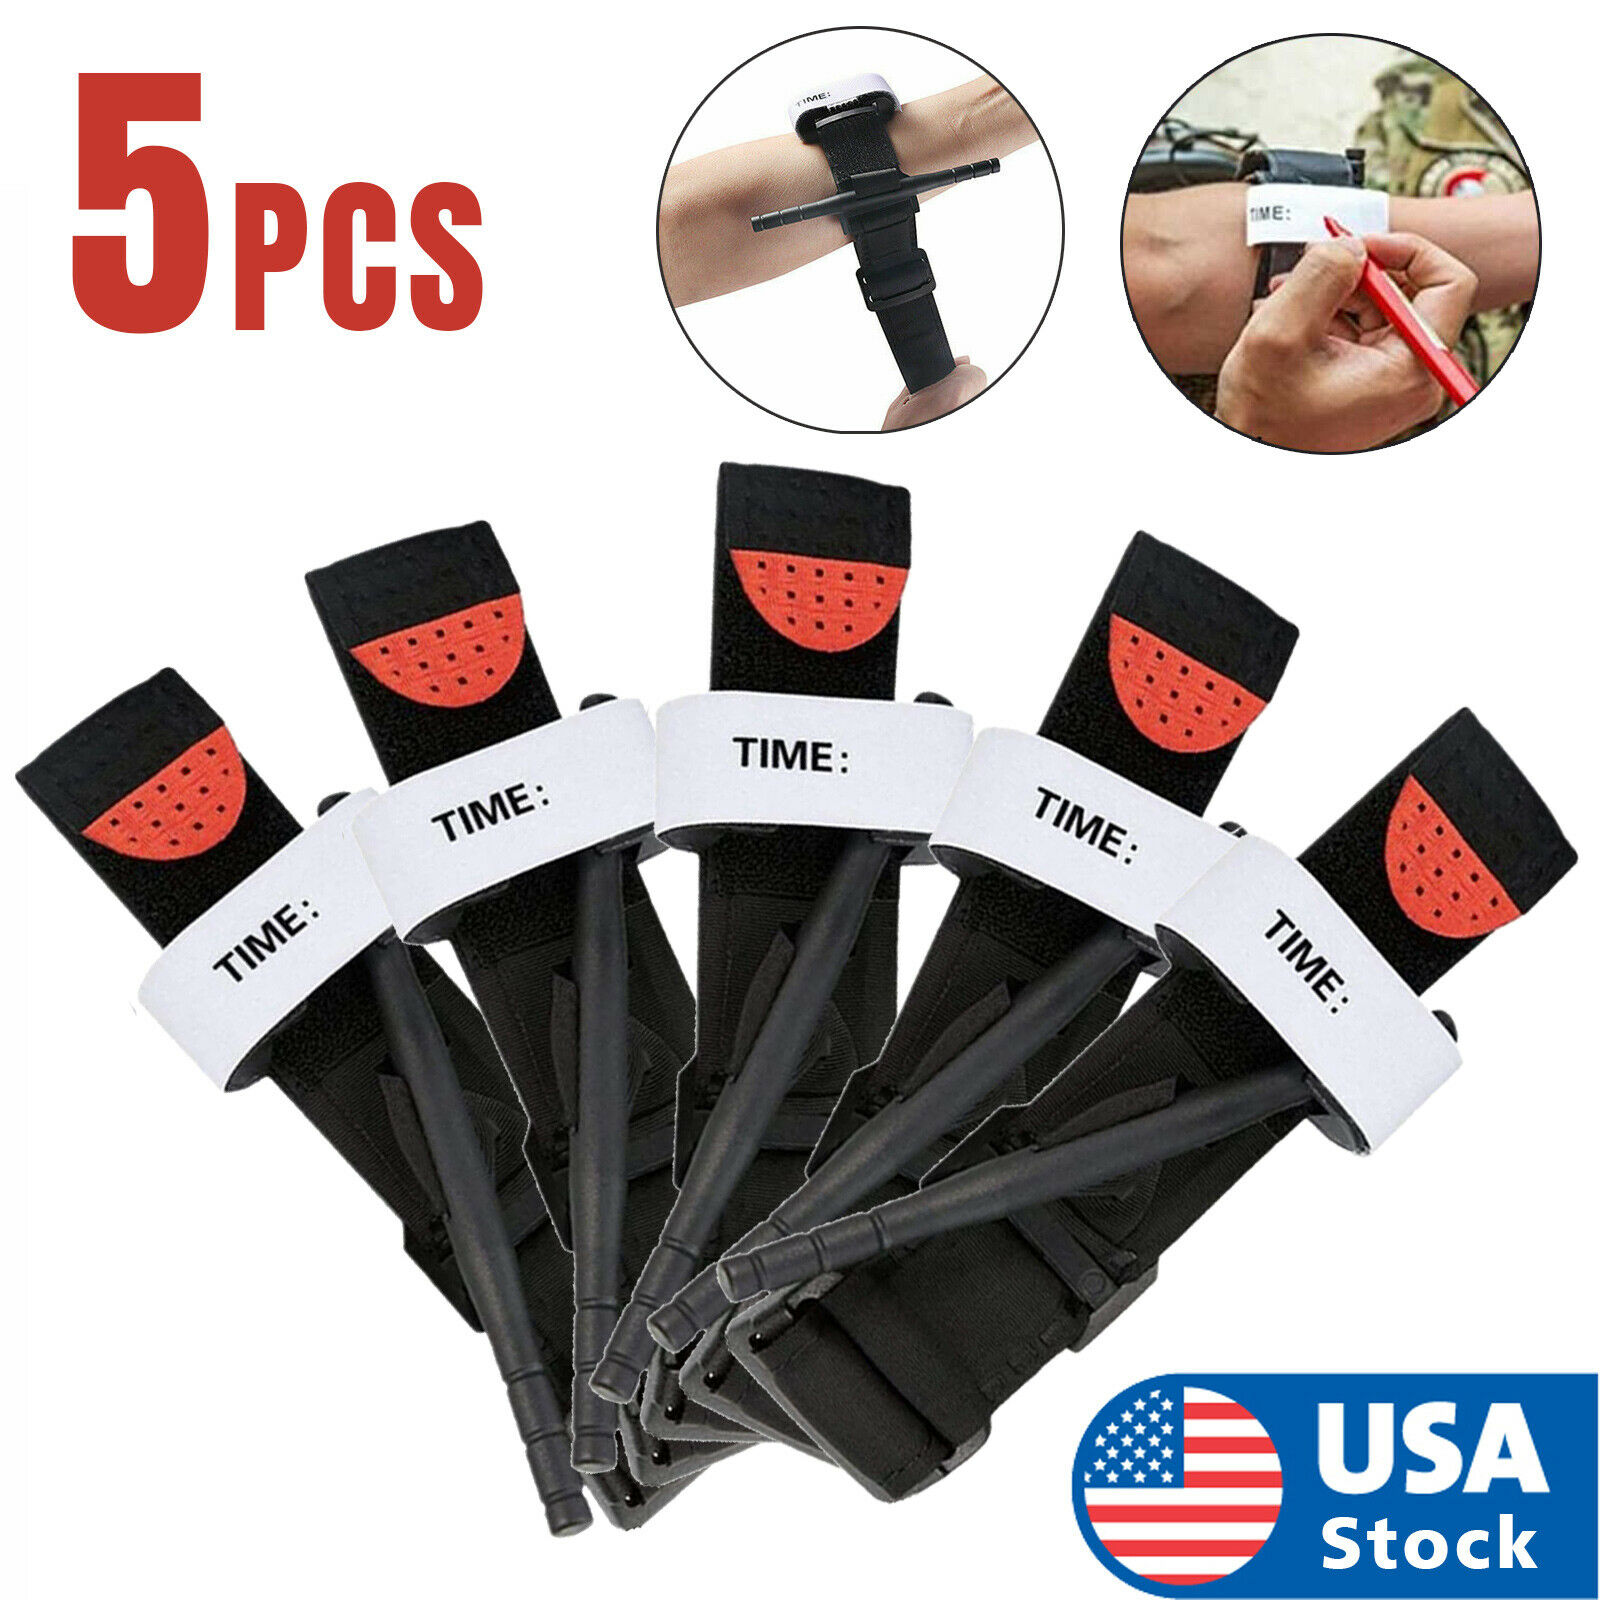 5 pcs Tourniquet Rapid One Hand Application Emergency Outdoor First Aid Kit USA Collectibles